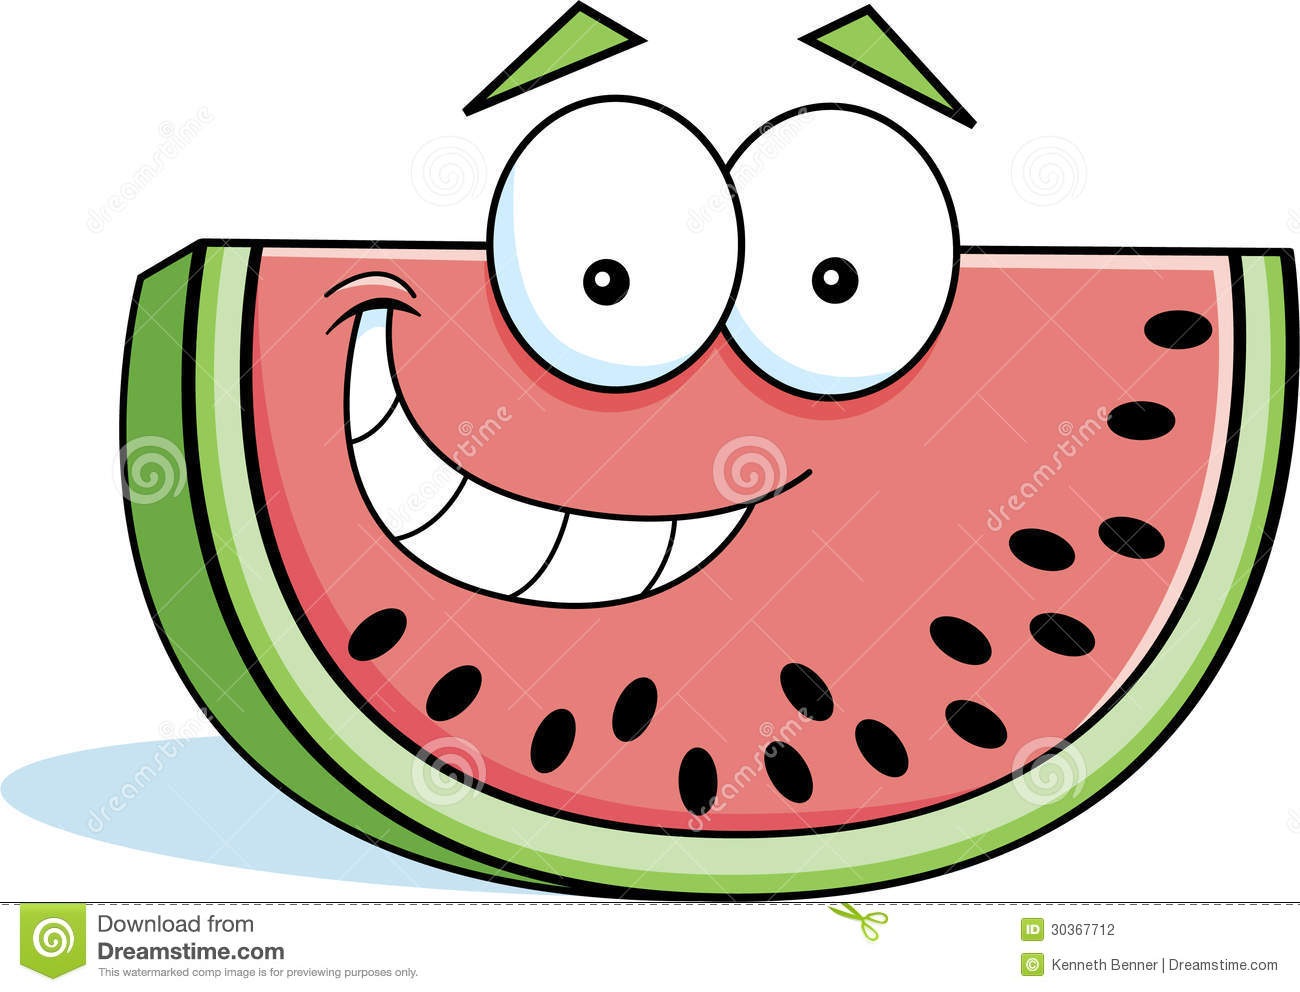 Watermelon Slice Outline Watermelon Slice OutlineWatermelon Slice Outline